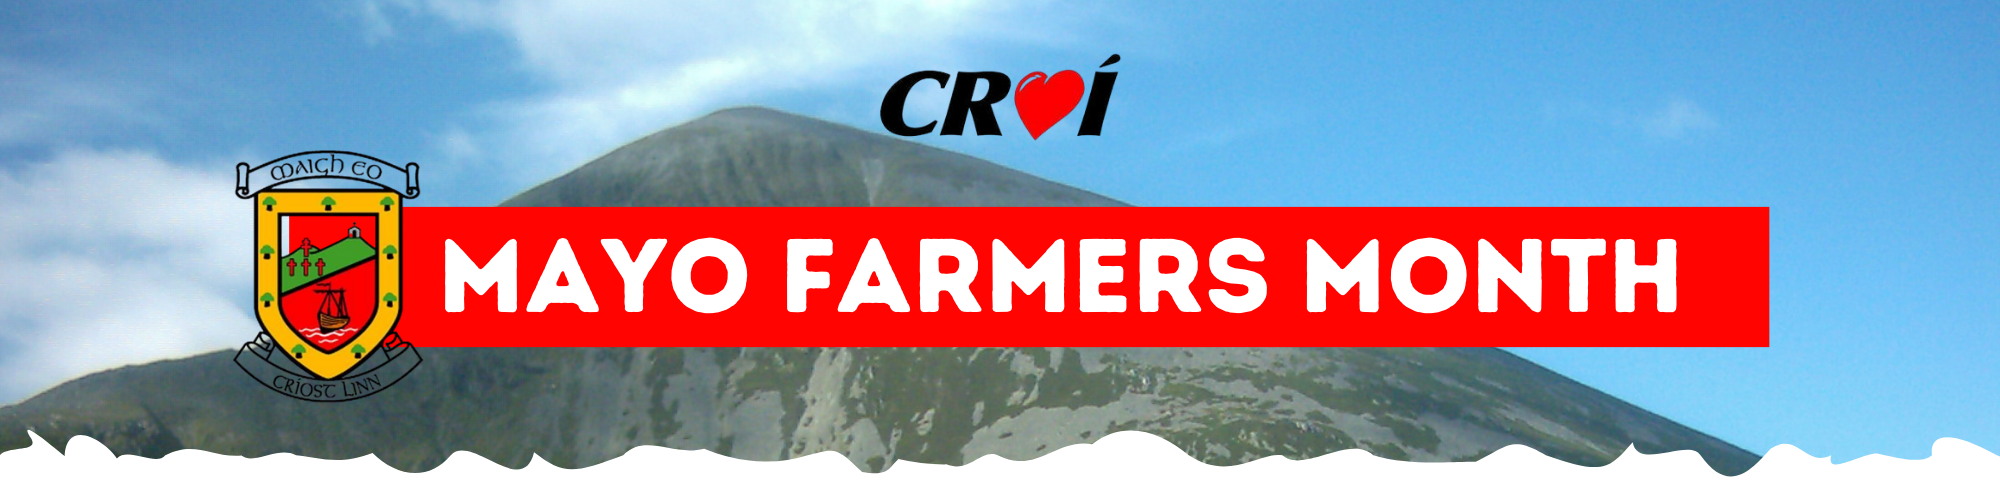 Farmers project - resources page banner